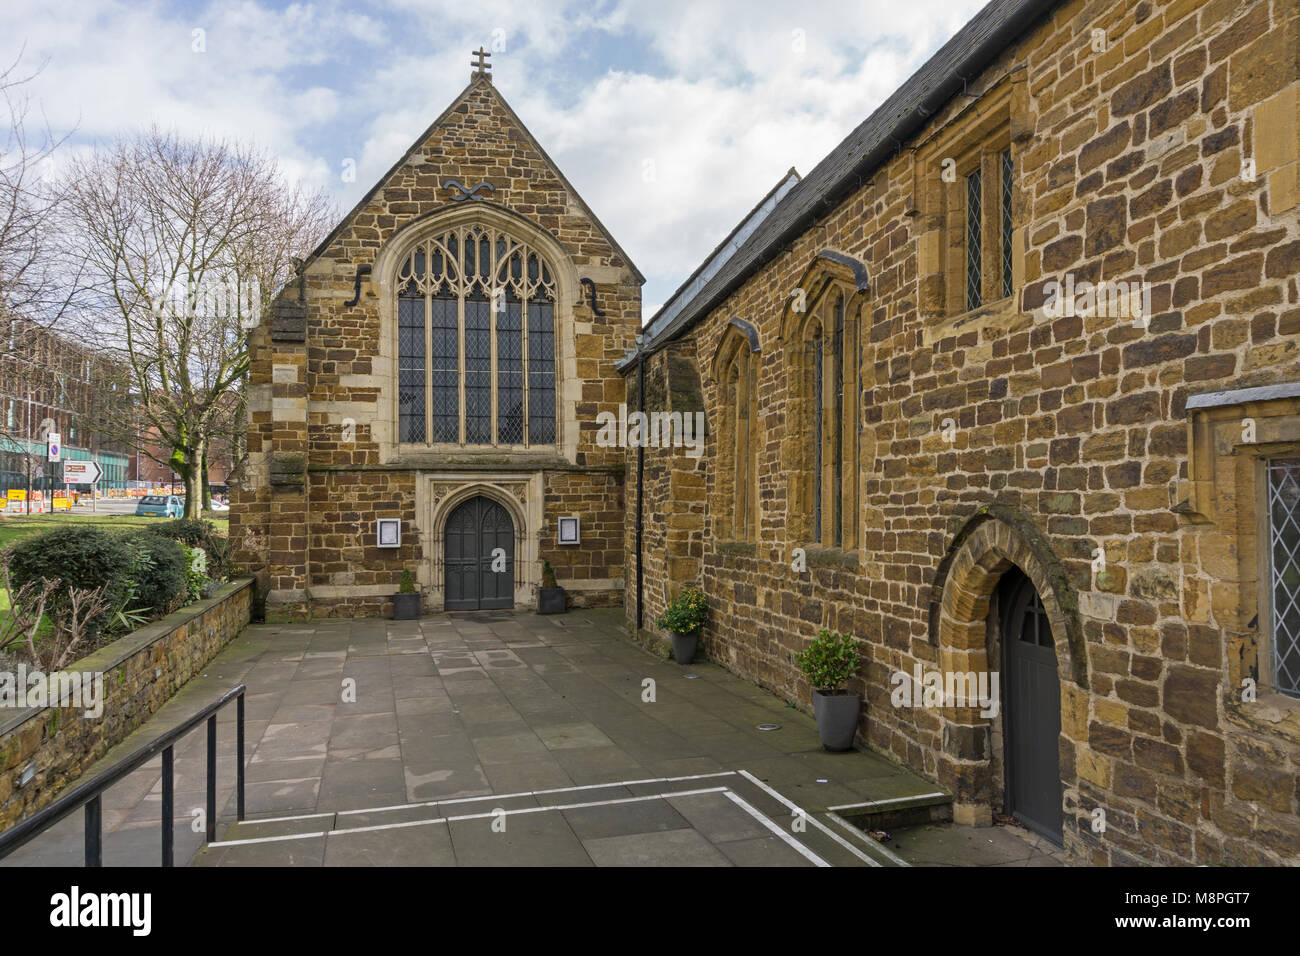 The 12th century former church of St John's, the oldest secular building in Northampton, UK; now a fine dining - Stock Image